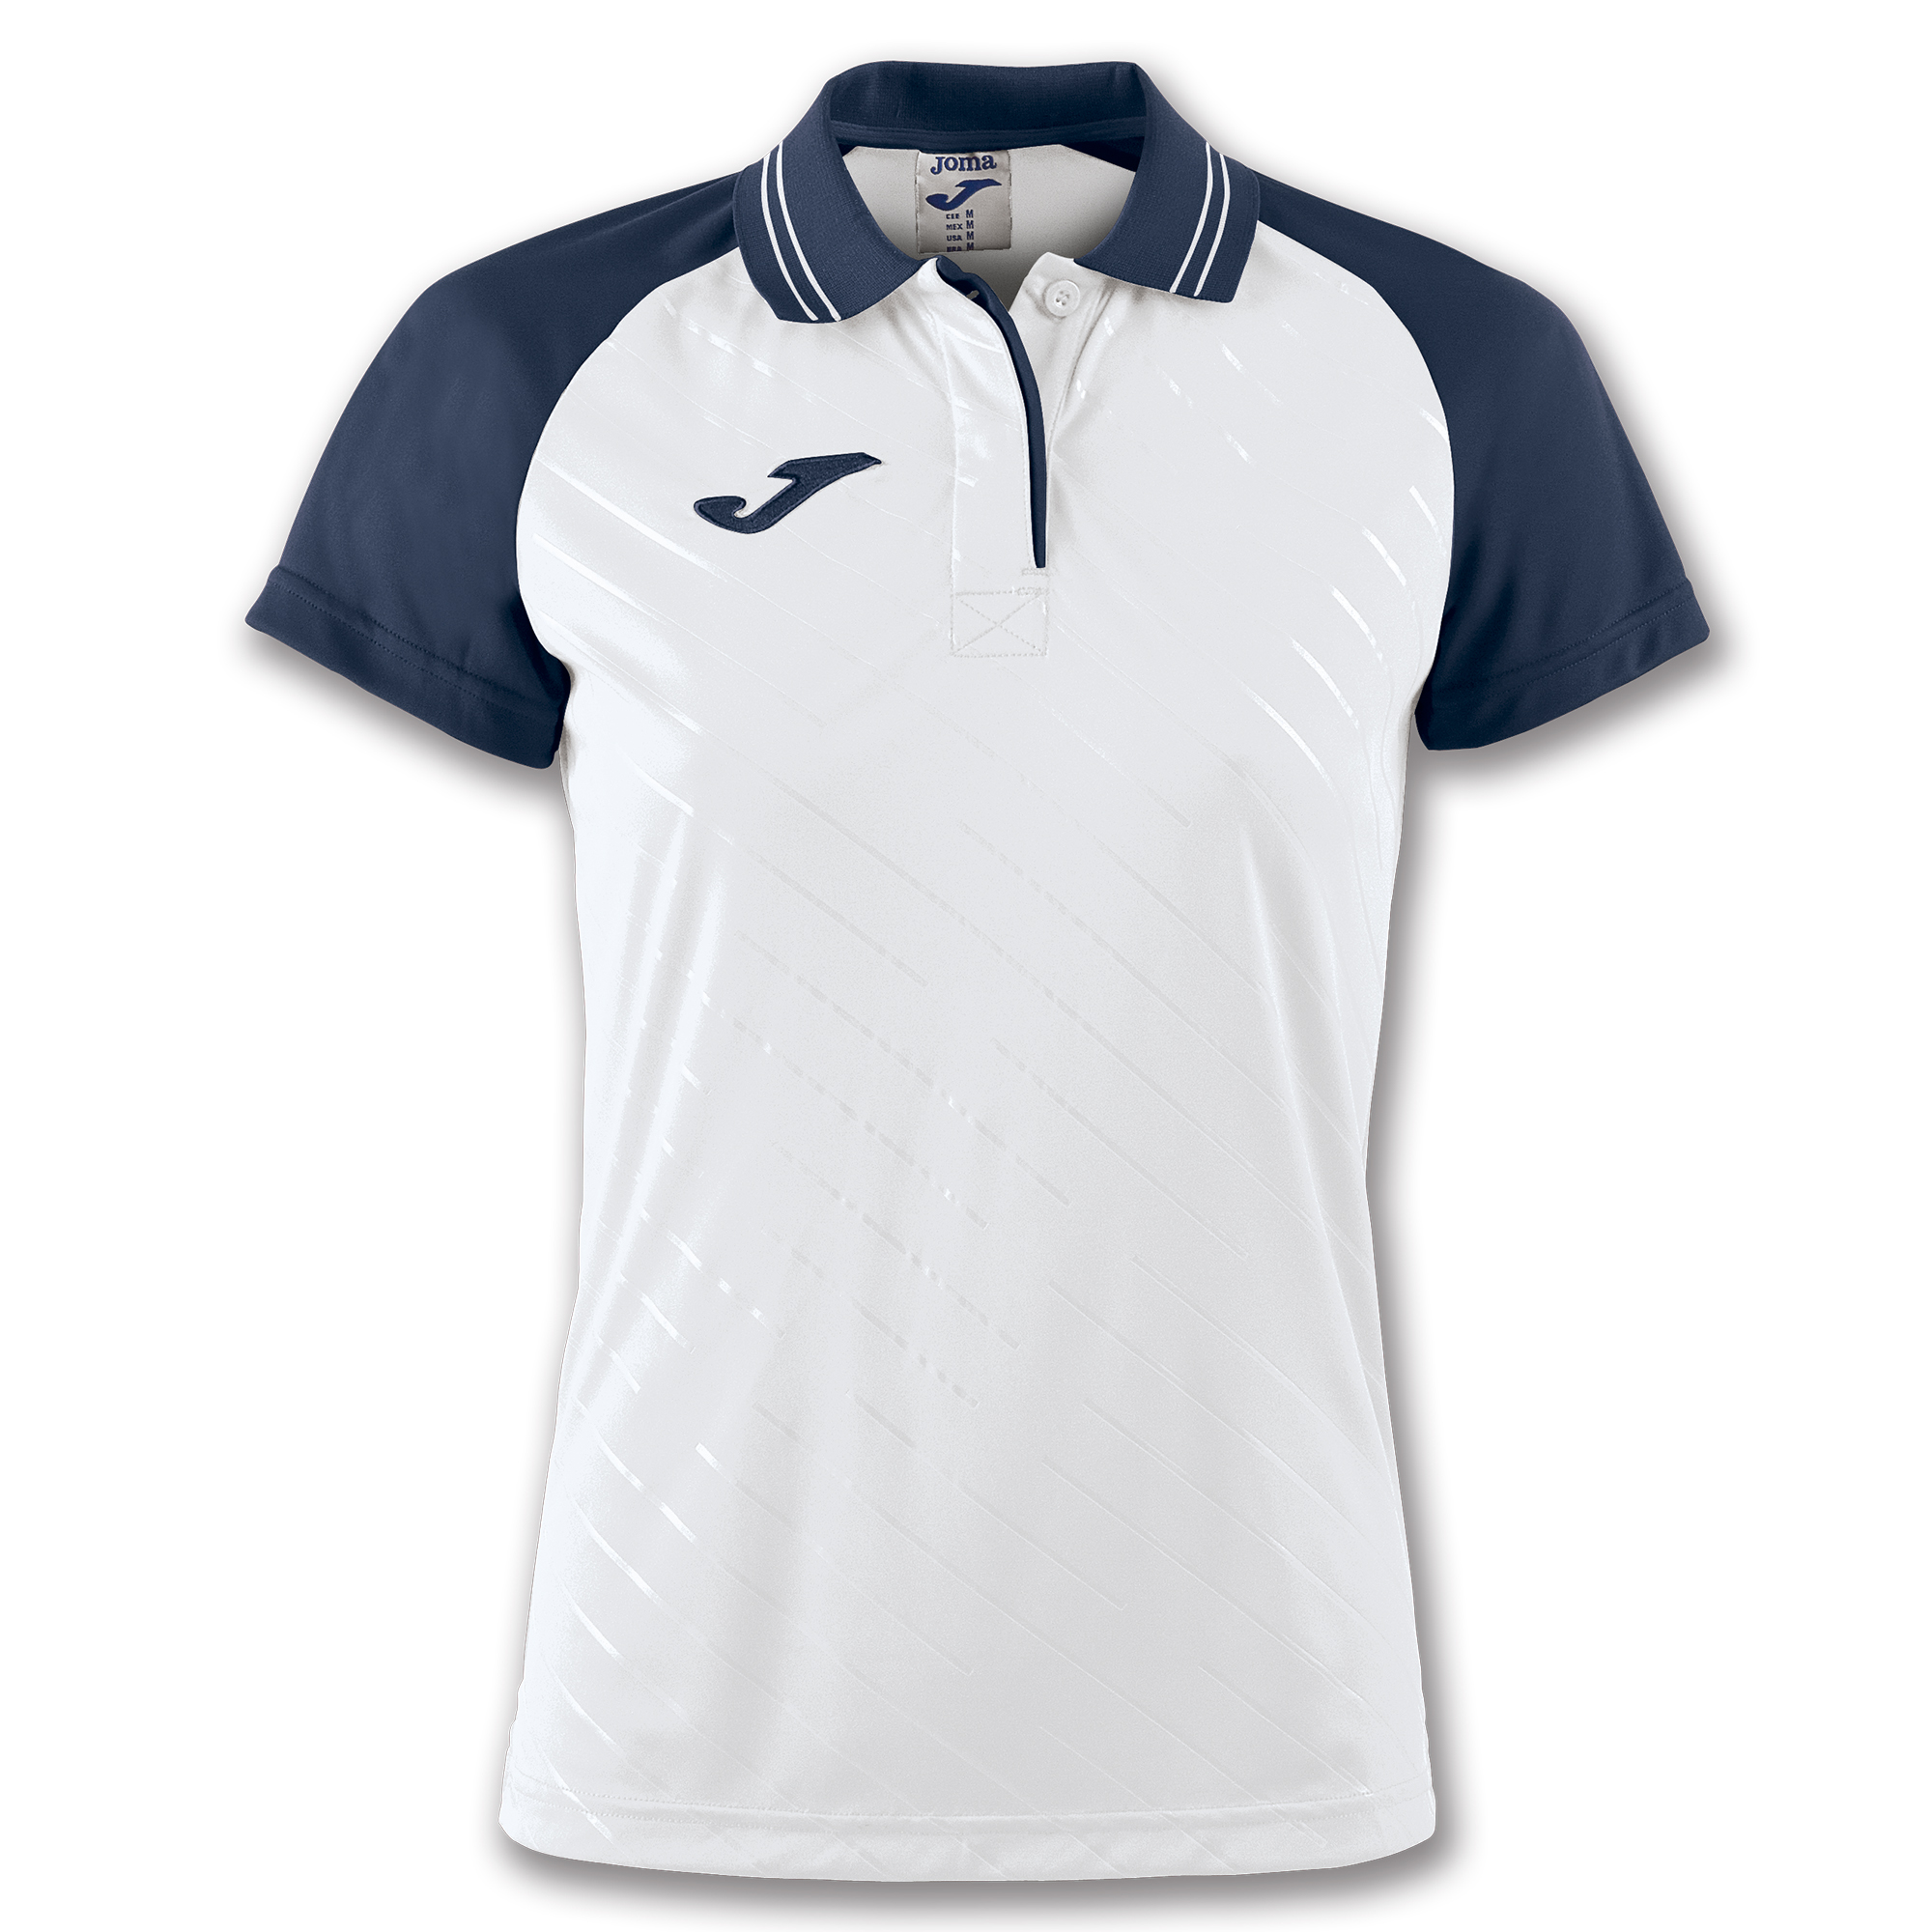 3f144b8ac165 S S POLO SHIRT TORNEO II WHITE-NAVY BLUE WOMEN - 1 ...